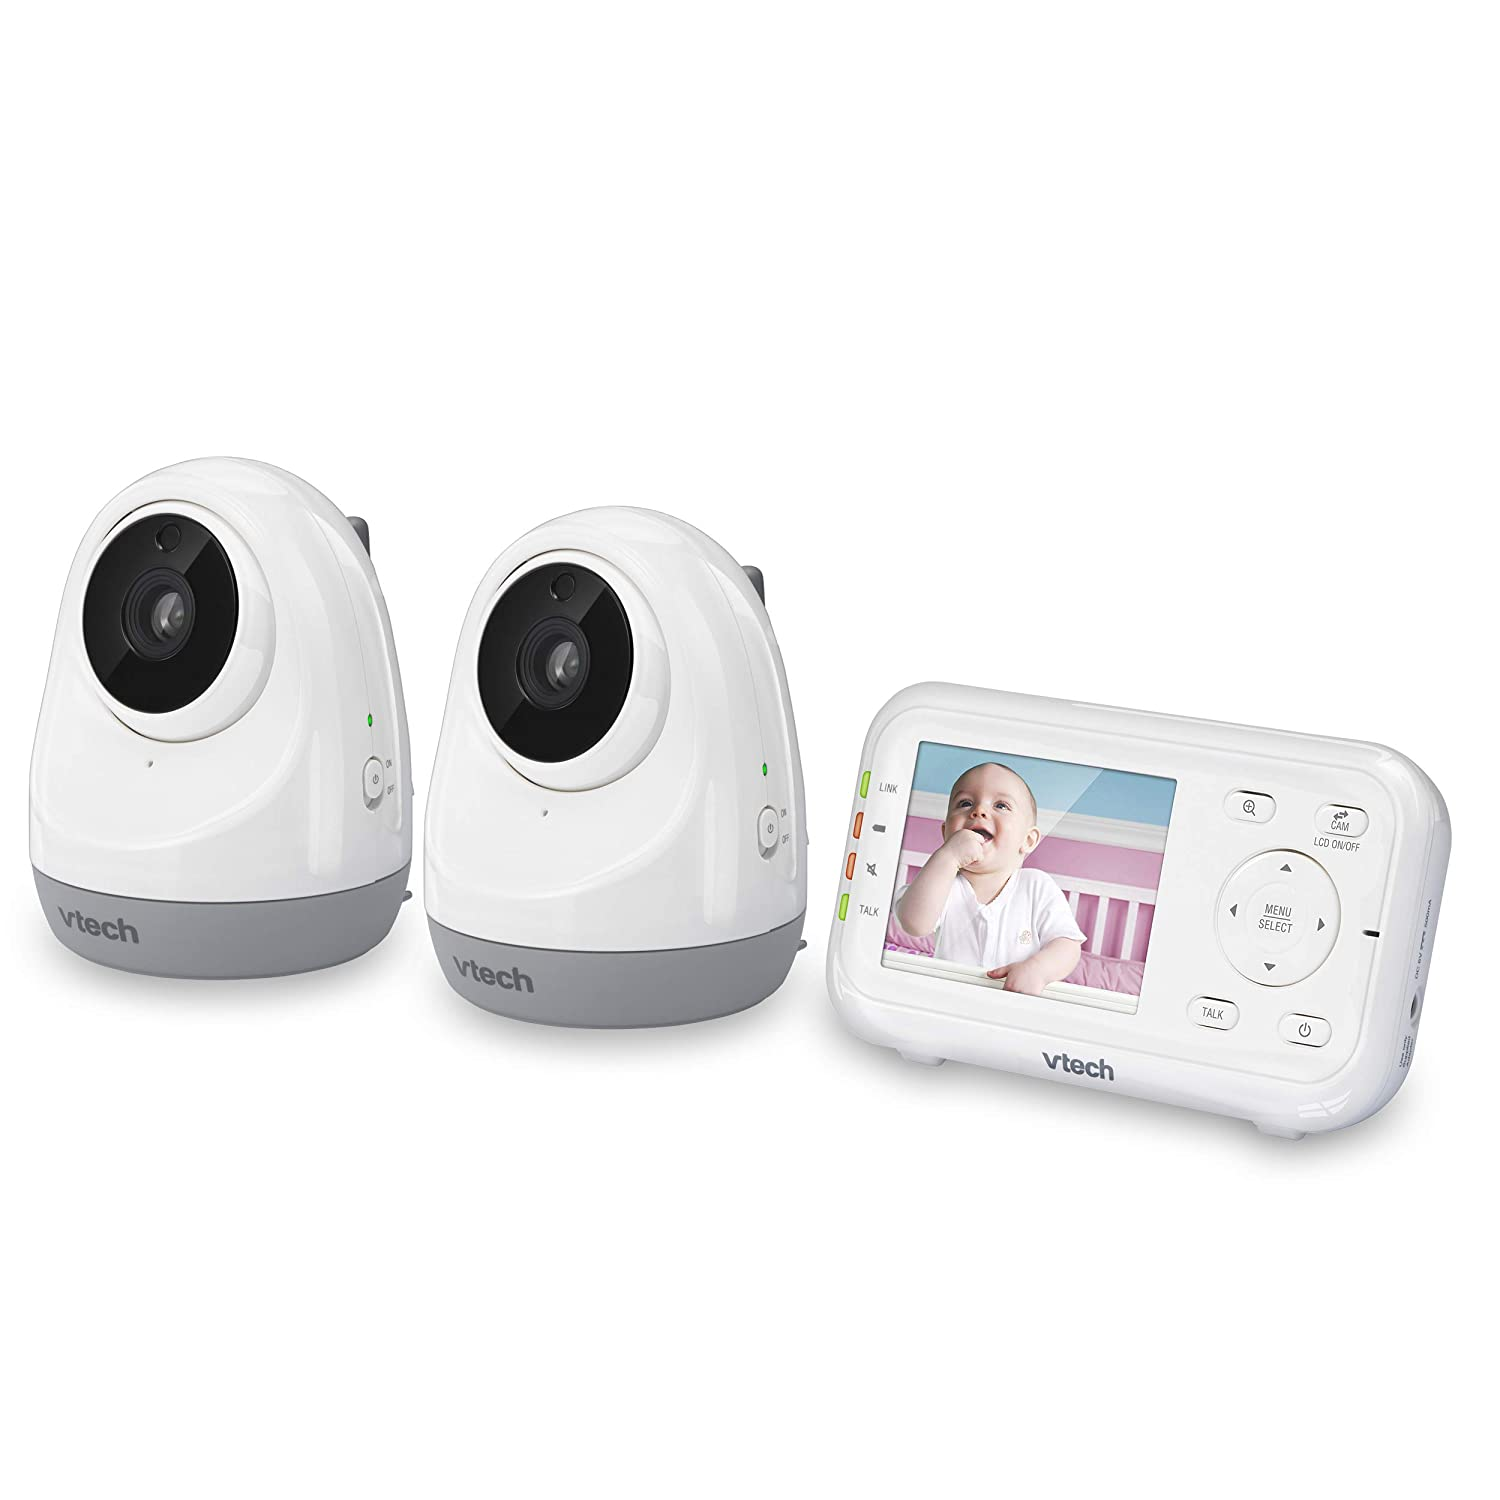 "VTech VM3261-2 2.8"" Digital Video Baby Monitor with 2 Pan & Tilt Cameras, Full Color and Automatic Night Vision, White"